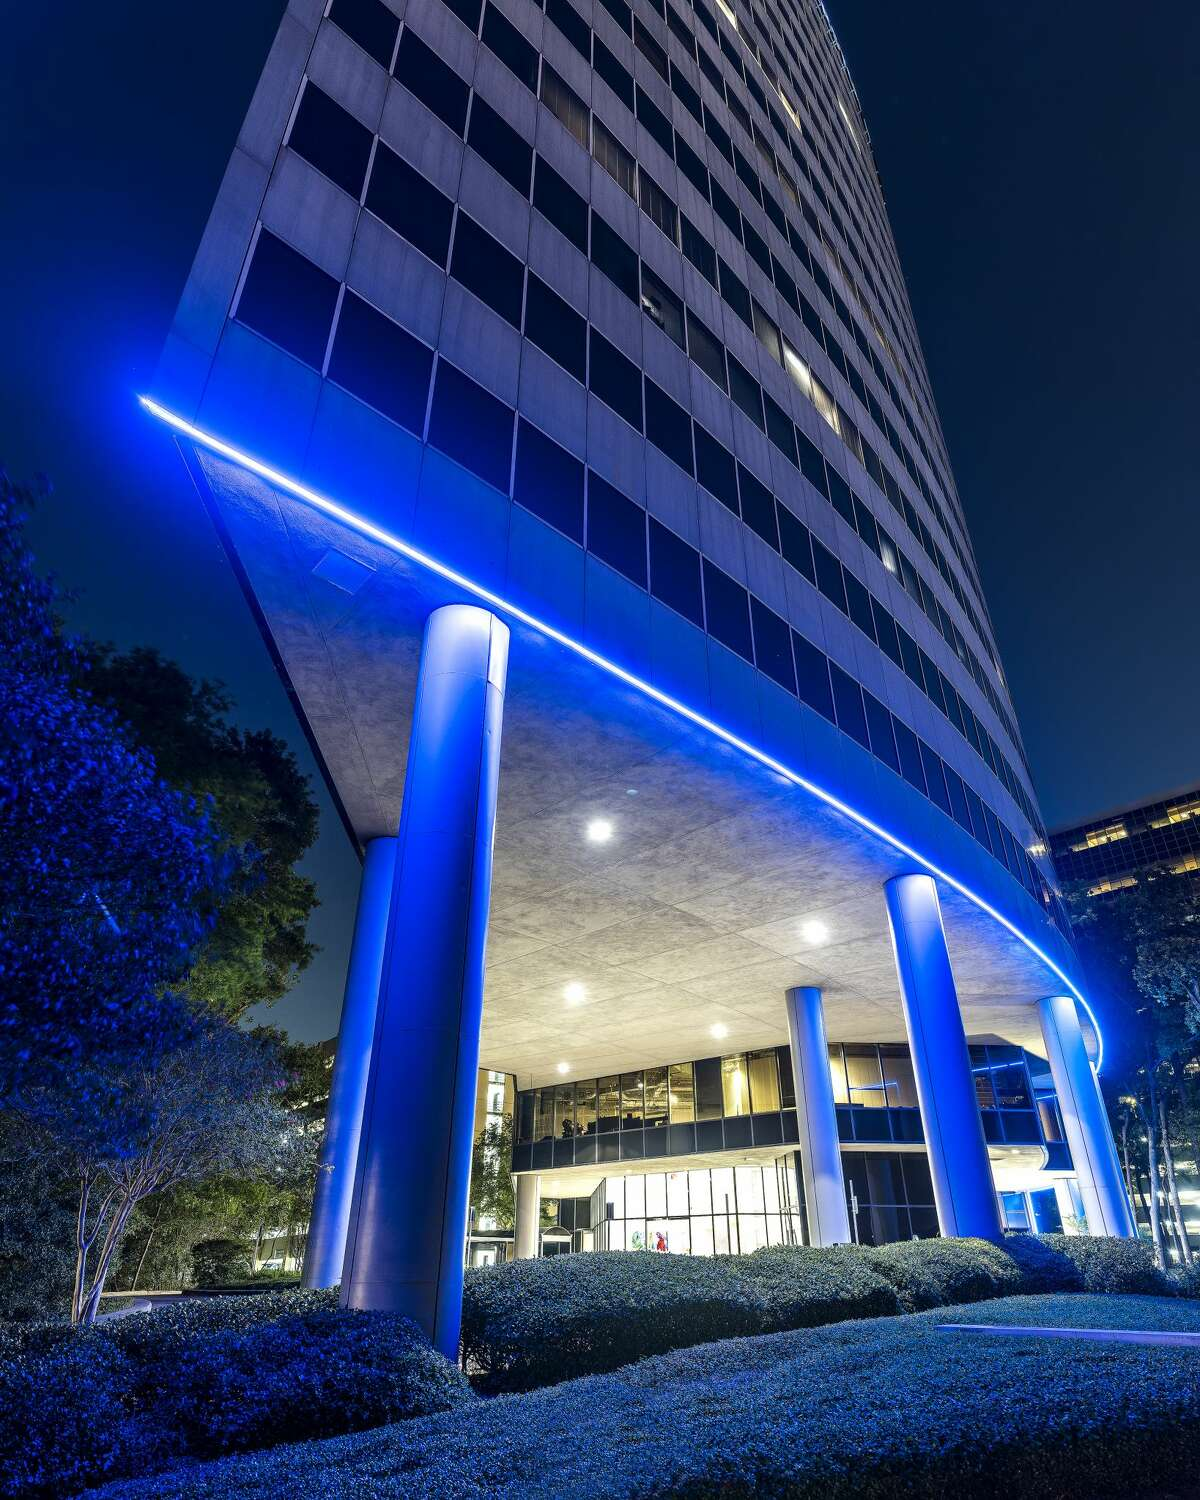 Transwestern Real Estate Services has been hired to handle office leasing services at 1177 W. Loop South.